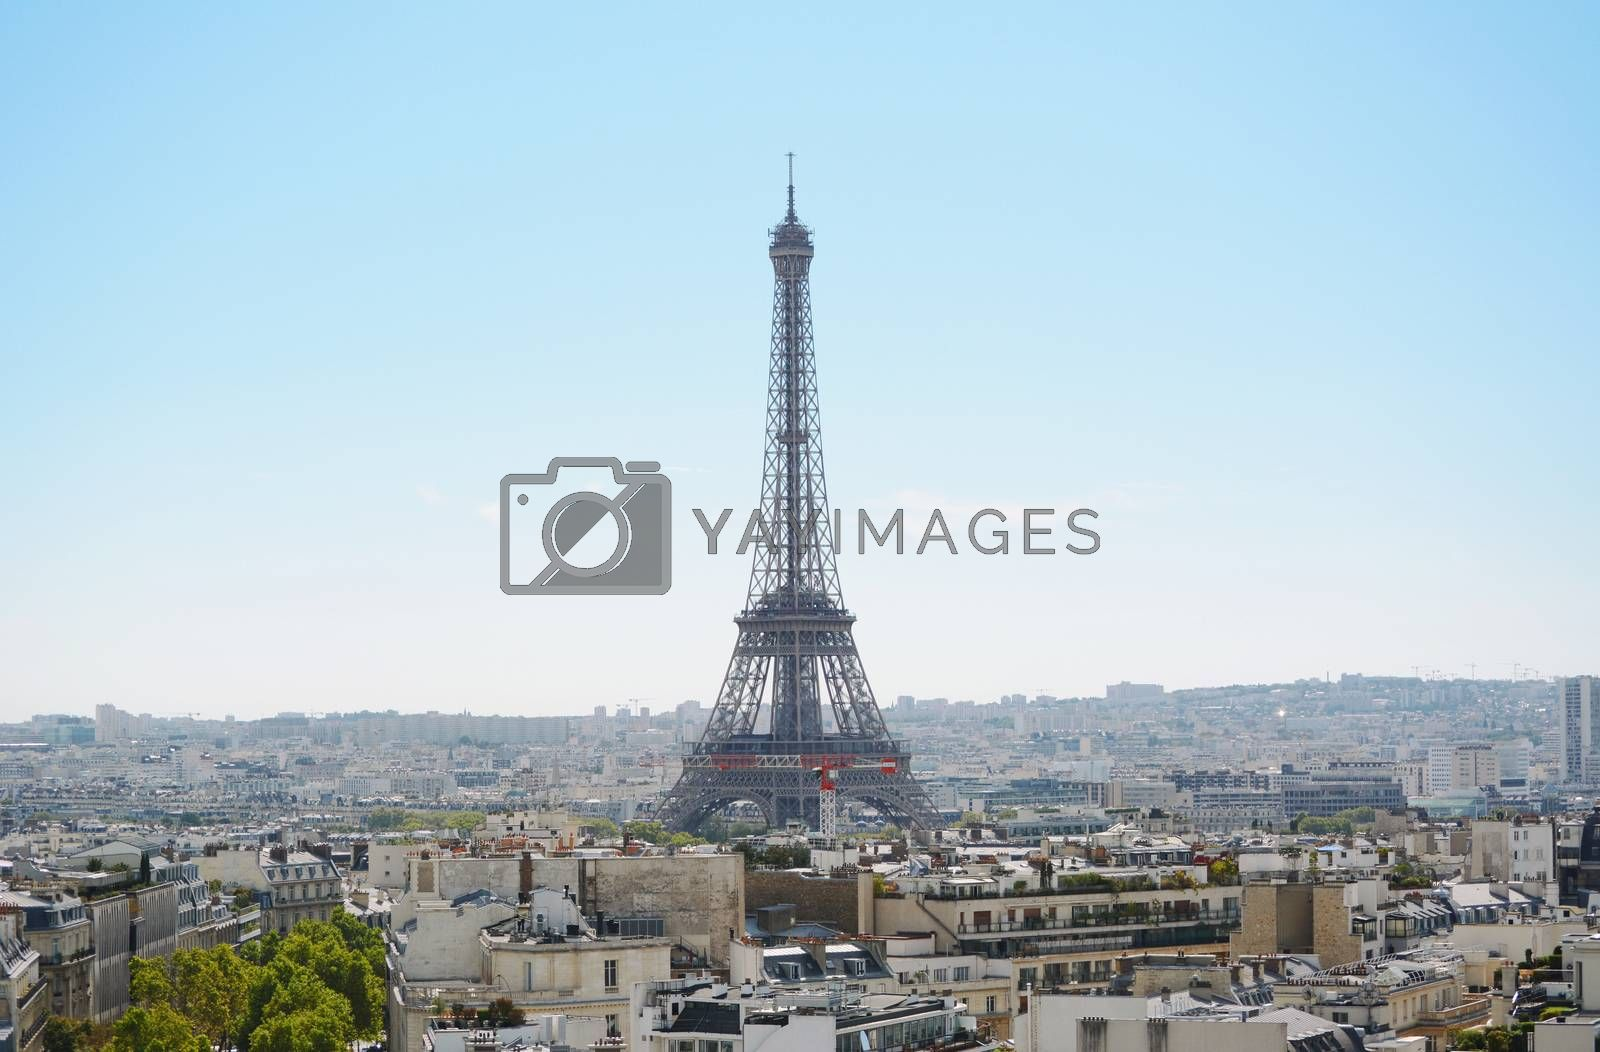 Eiffel Tower rises above the city of Paris, seen across the rooftops from the Arc de Triomphe